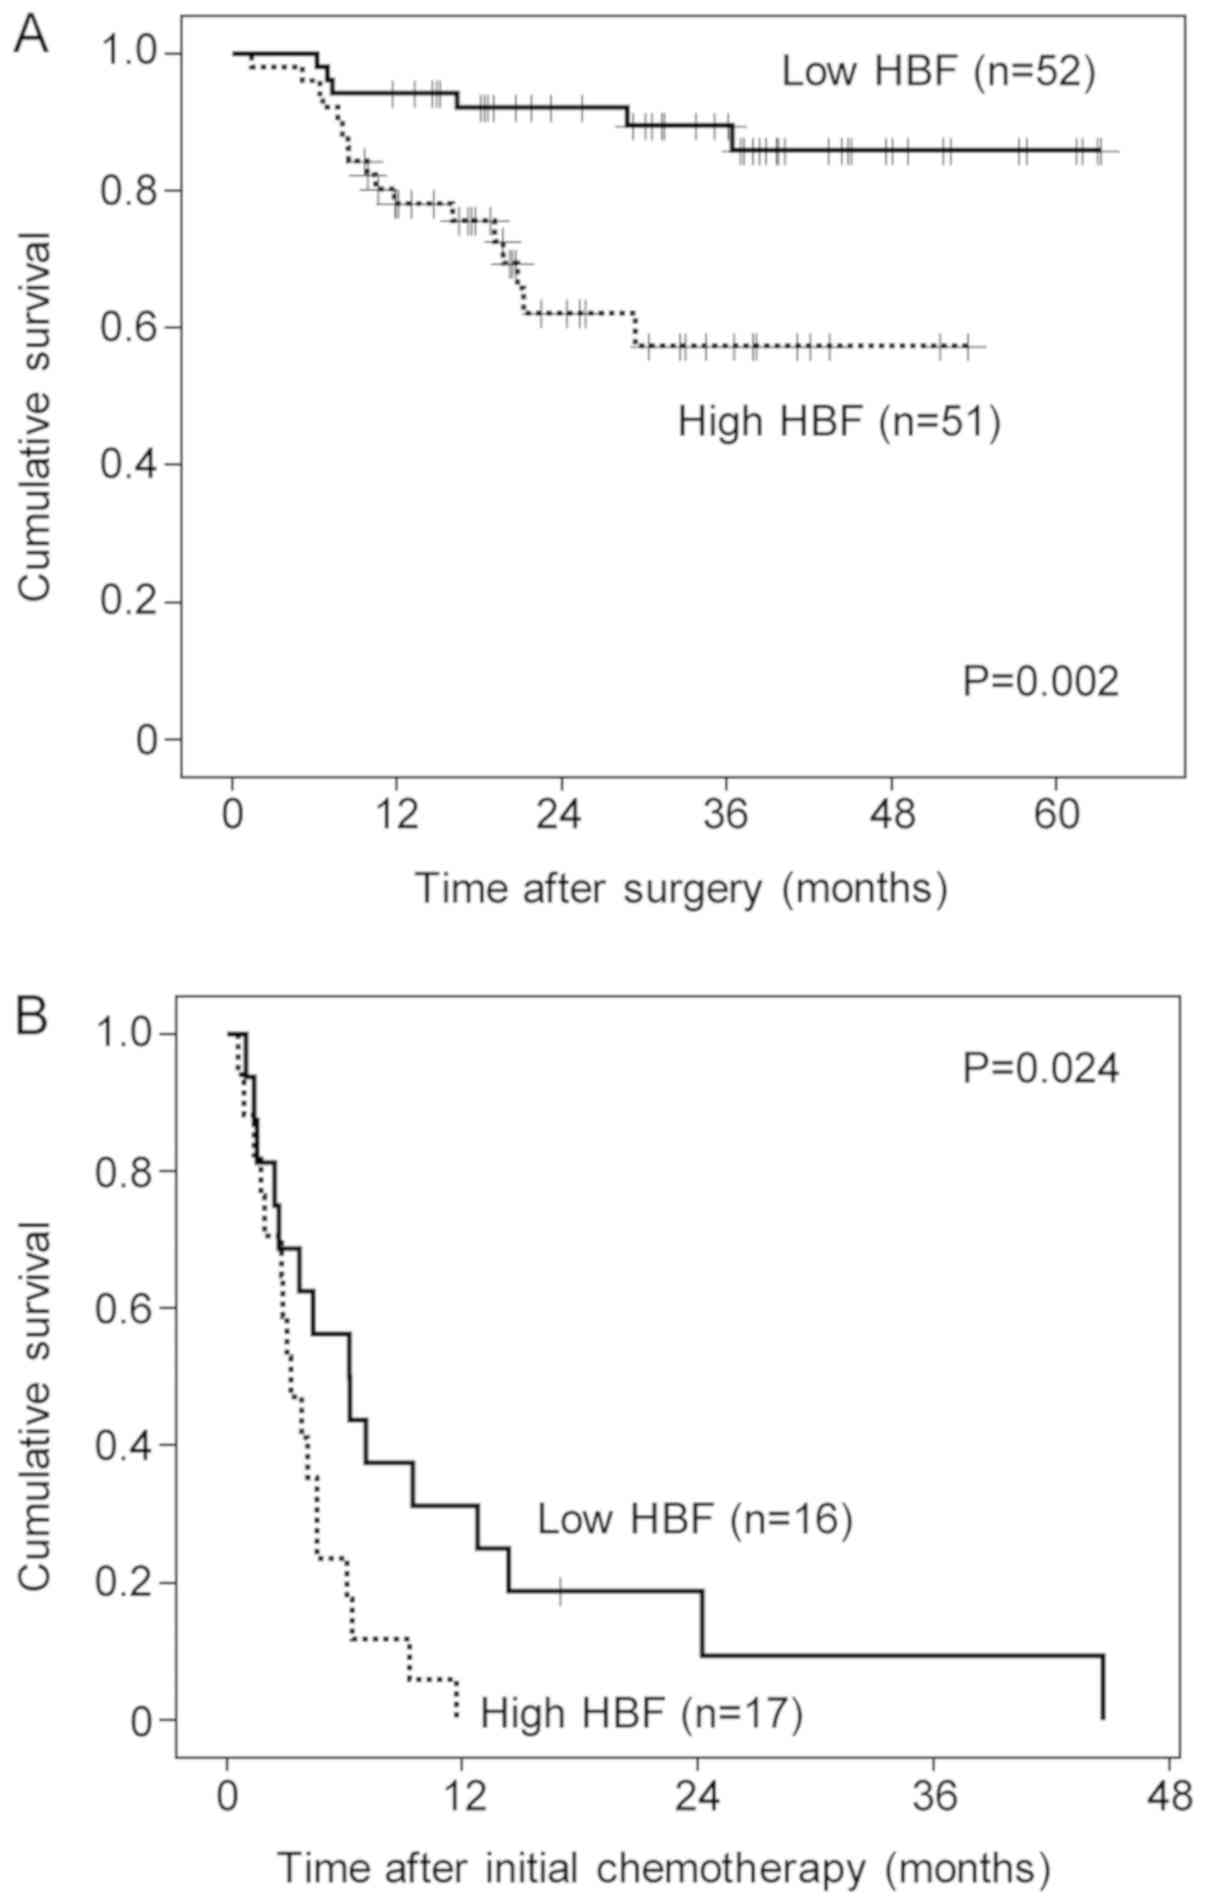 Hepatic Blood Flow By Perfusion Computed Tomography As An Imaging Biomarker For Patients With Gastric Cancer